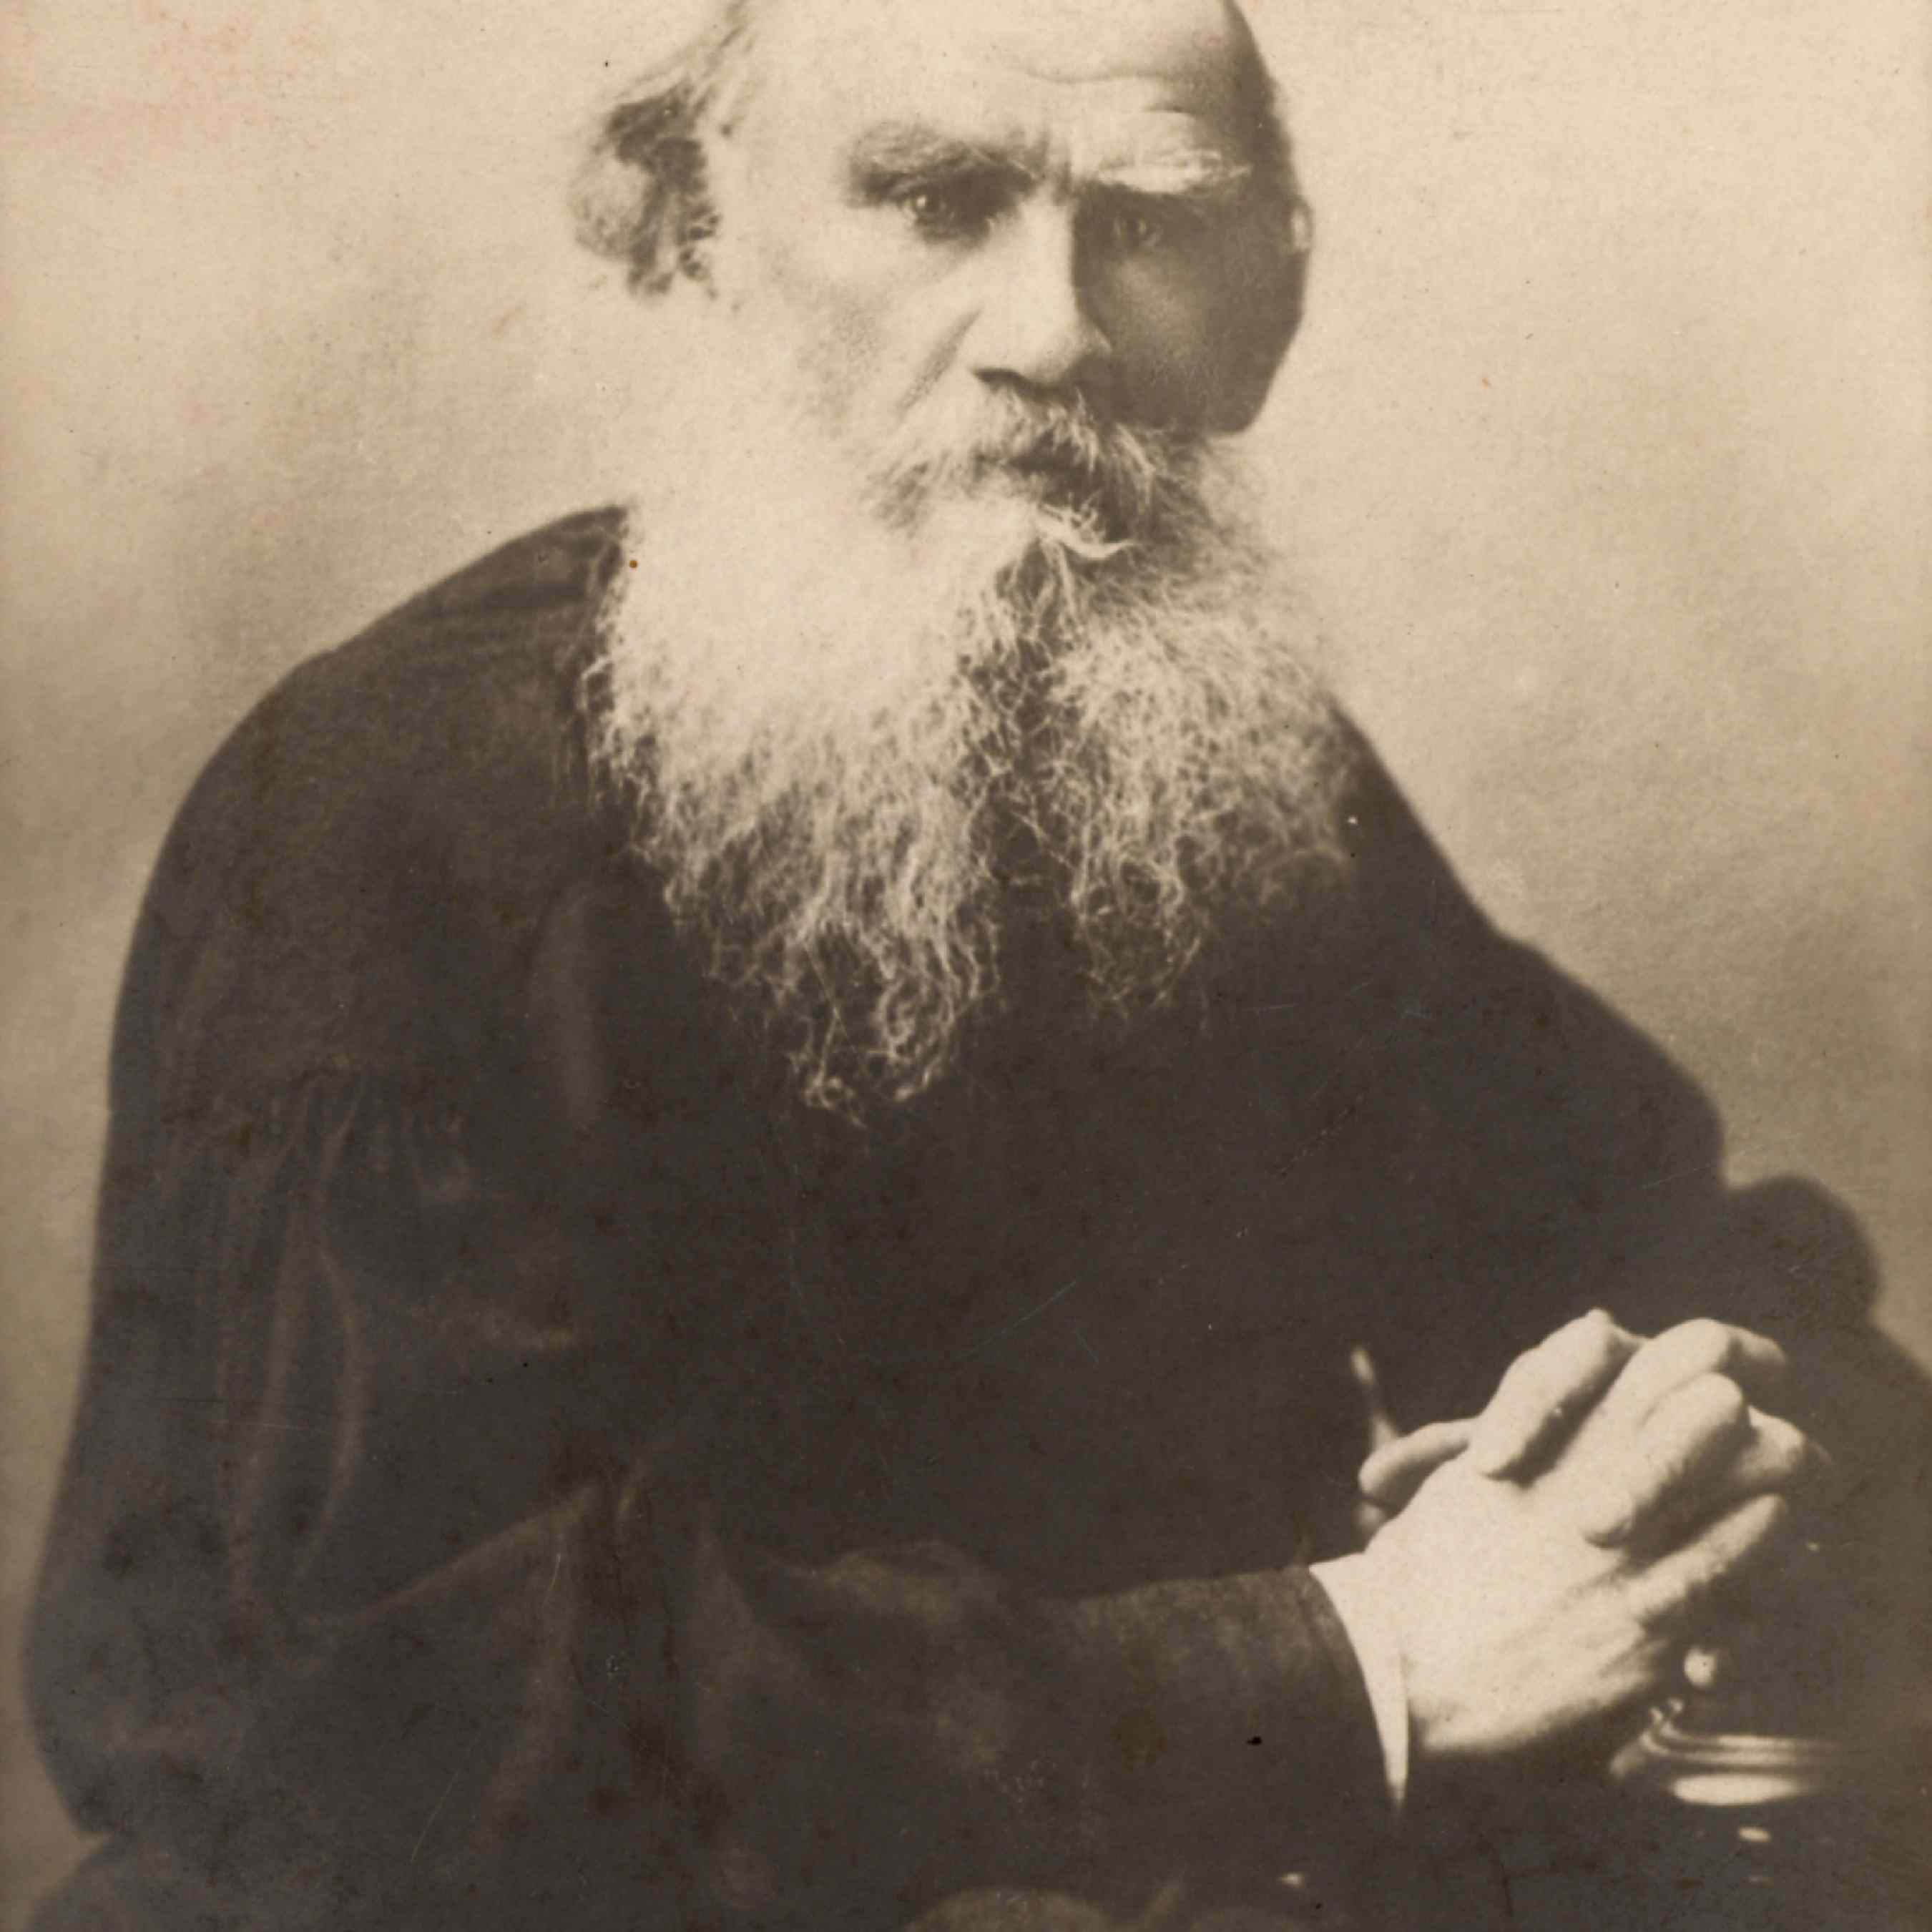 Sepia-toned portrait of an older Tolstoy